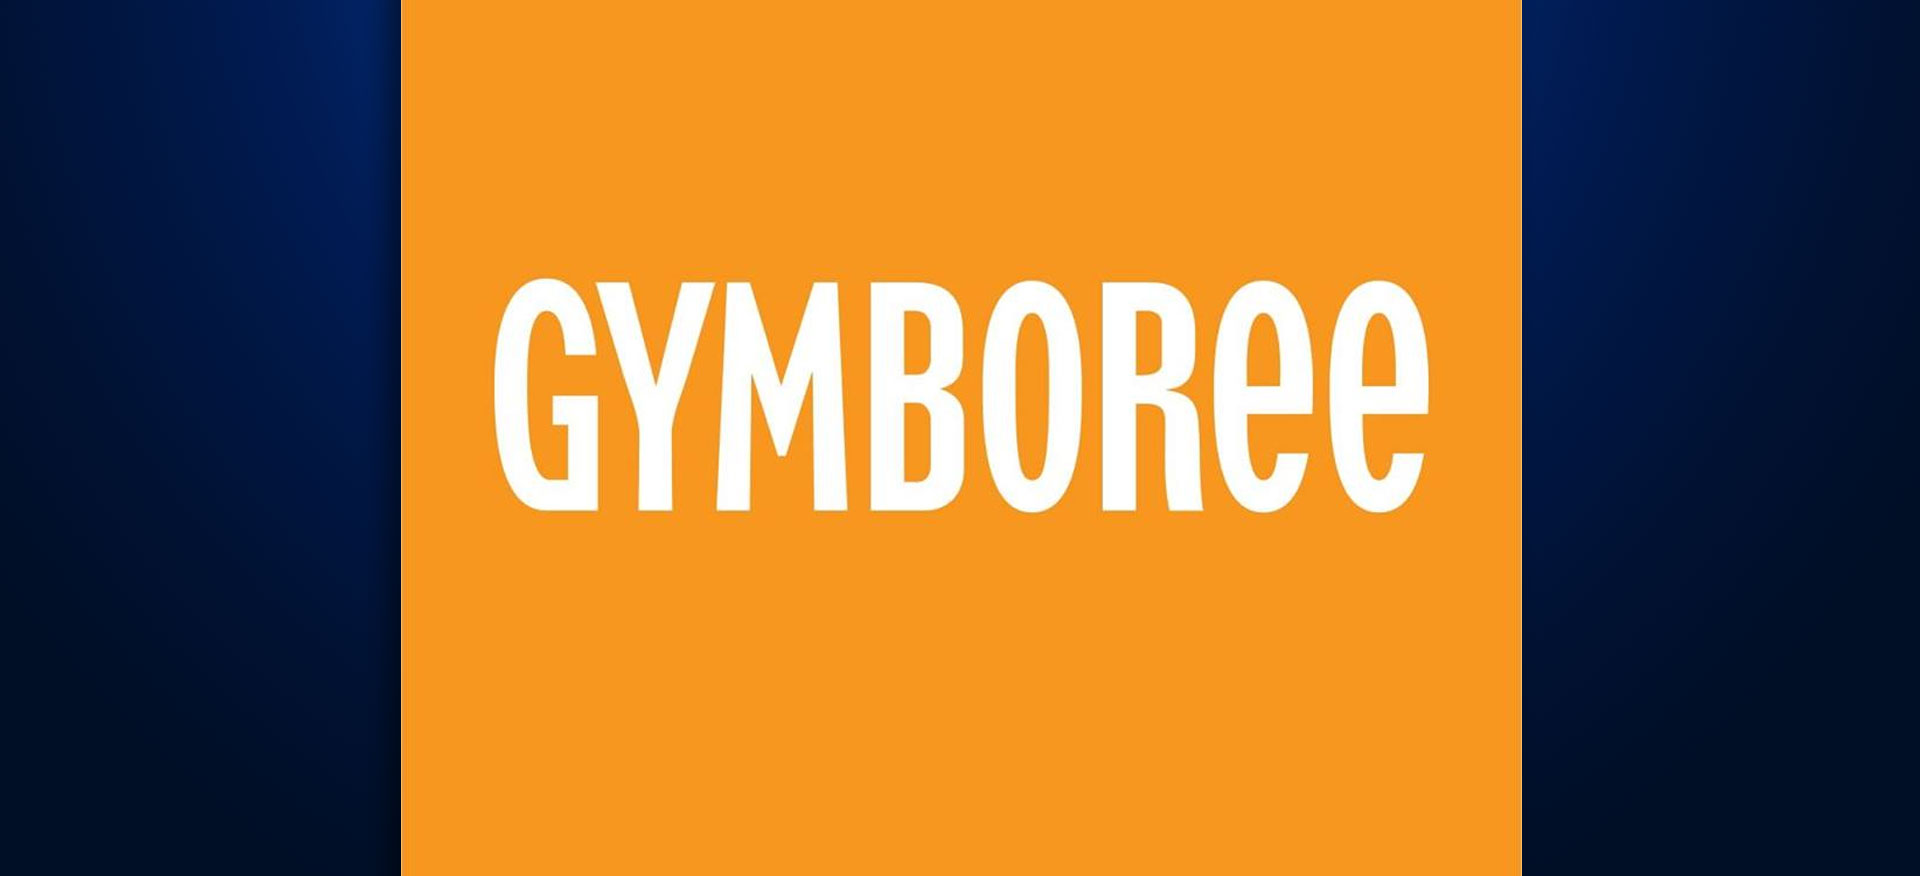 gymboree files for bankruptcy protection to reduce debt